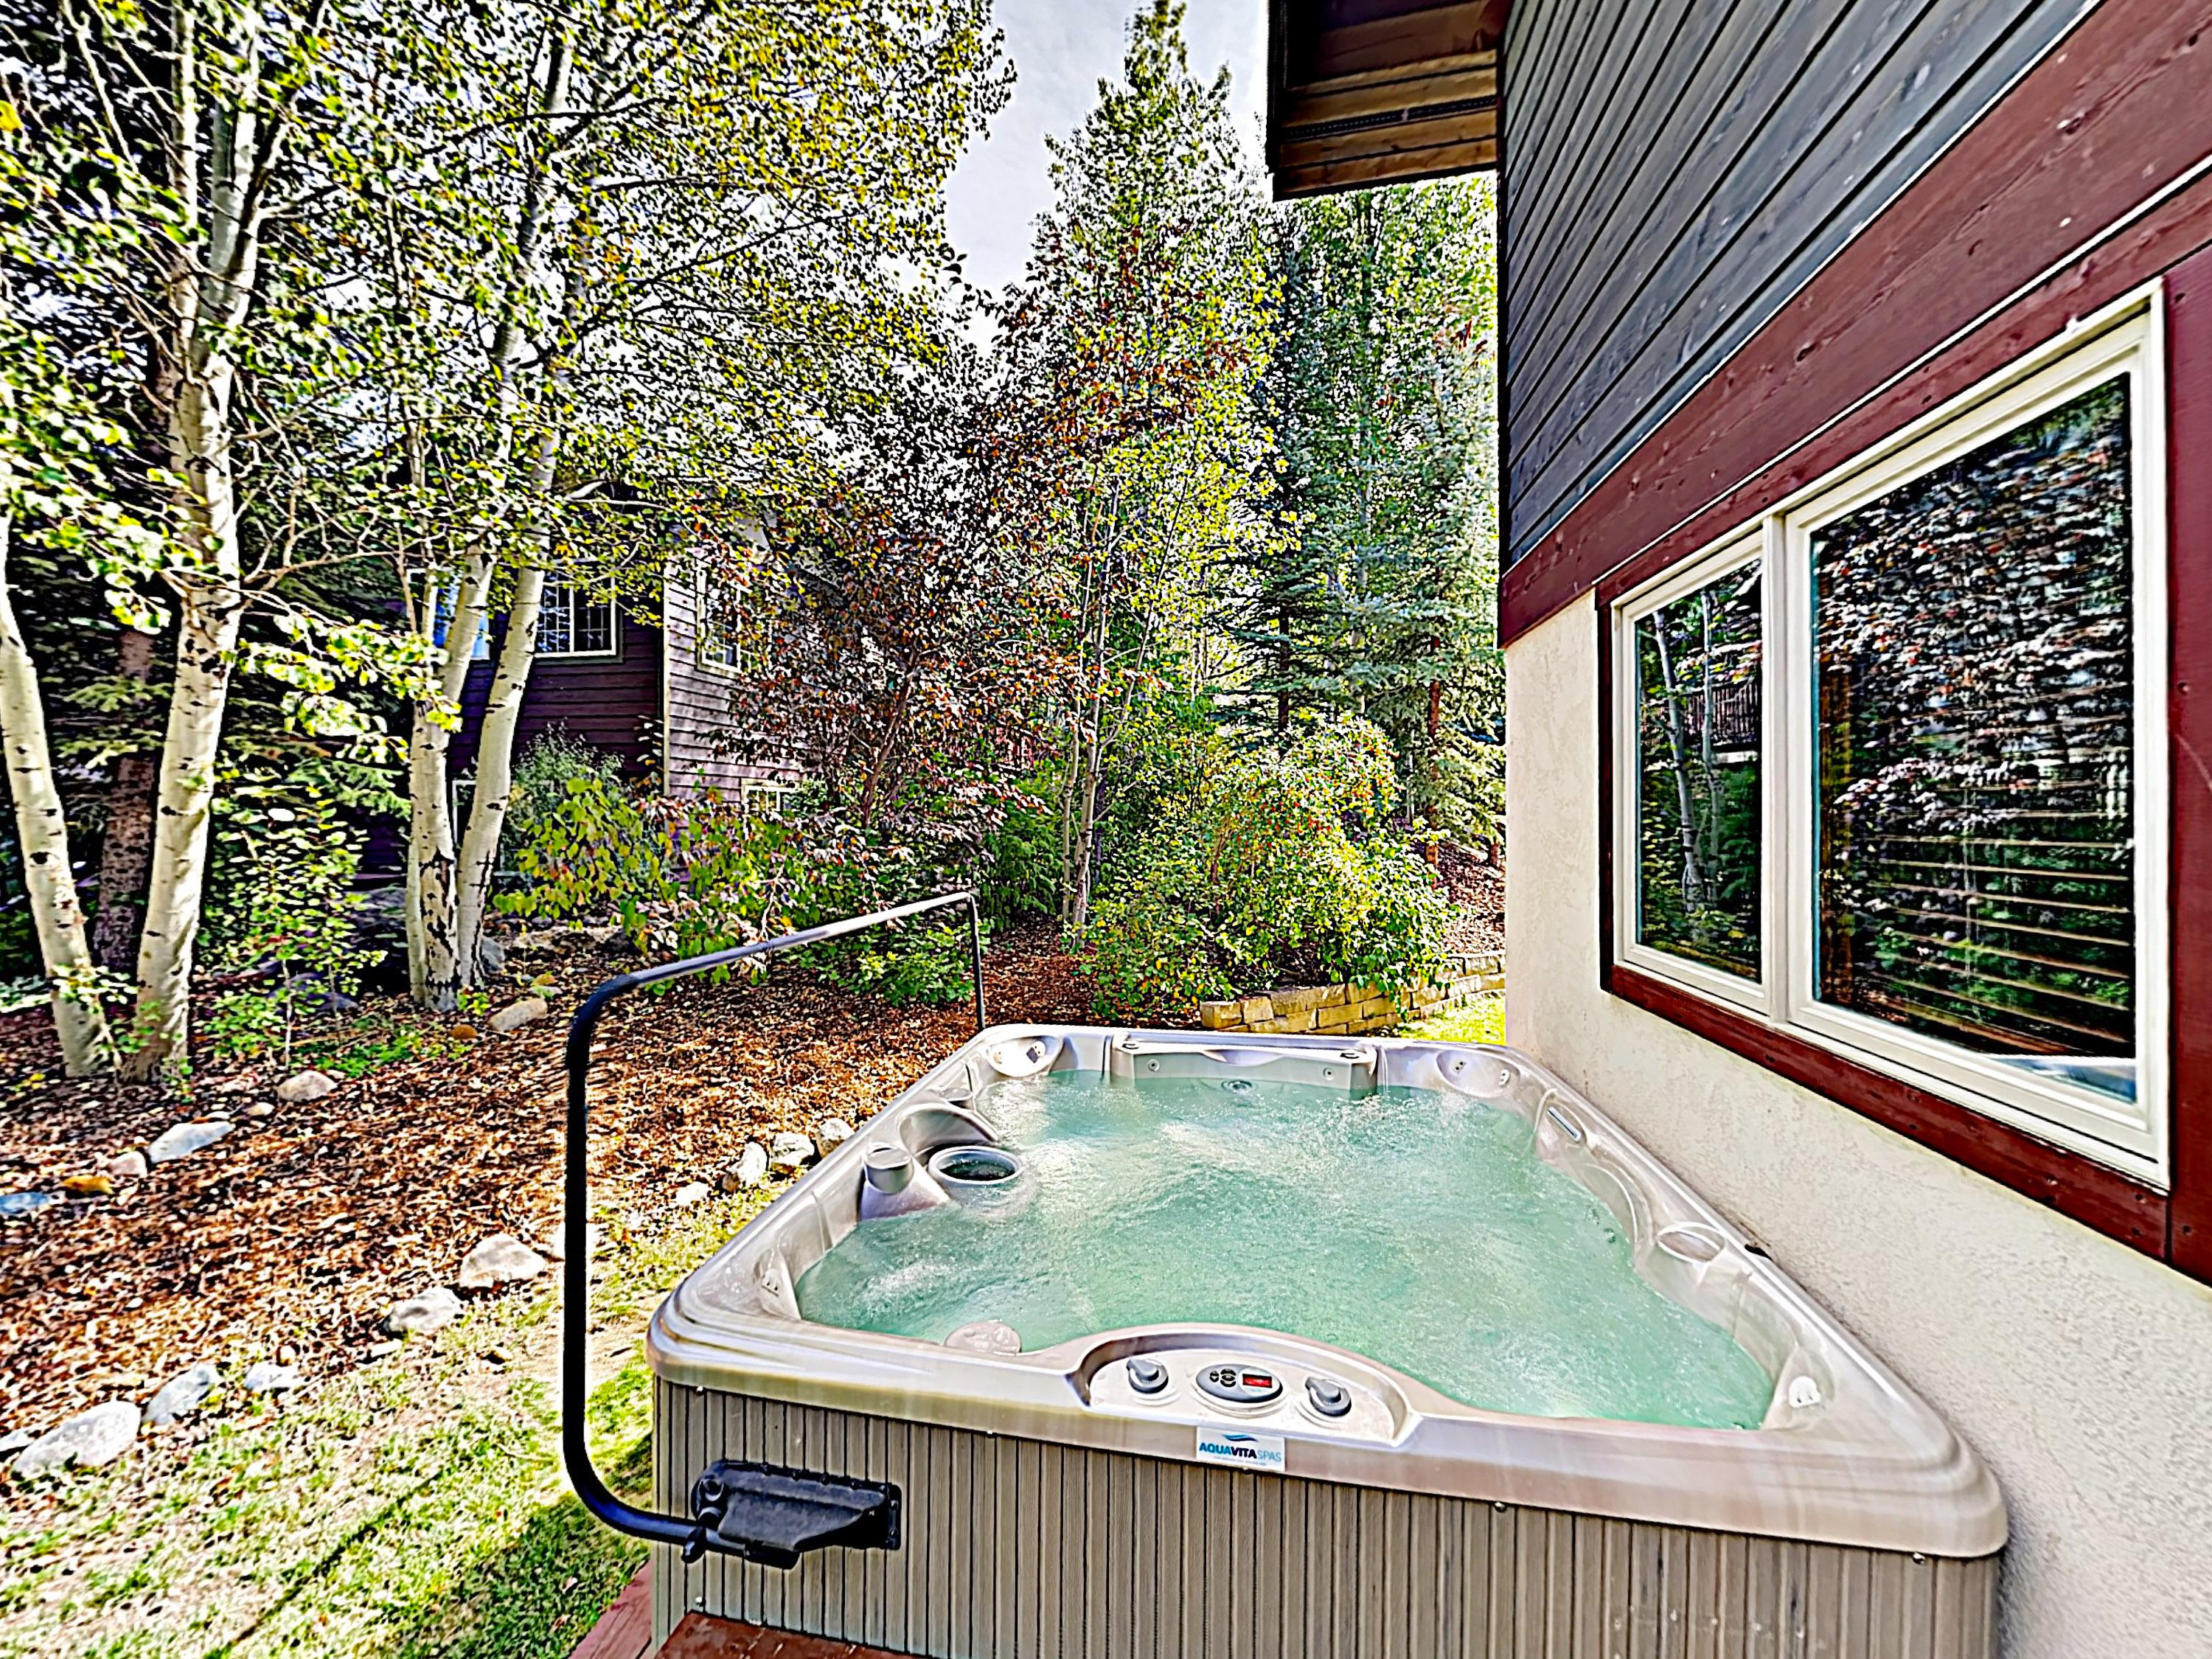 Soak in the private hot tub after a fun-filled day of adventures.